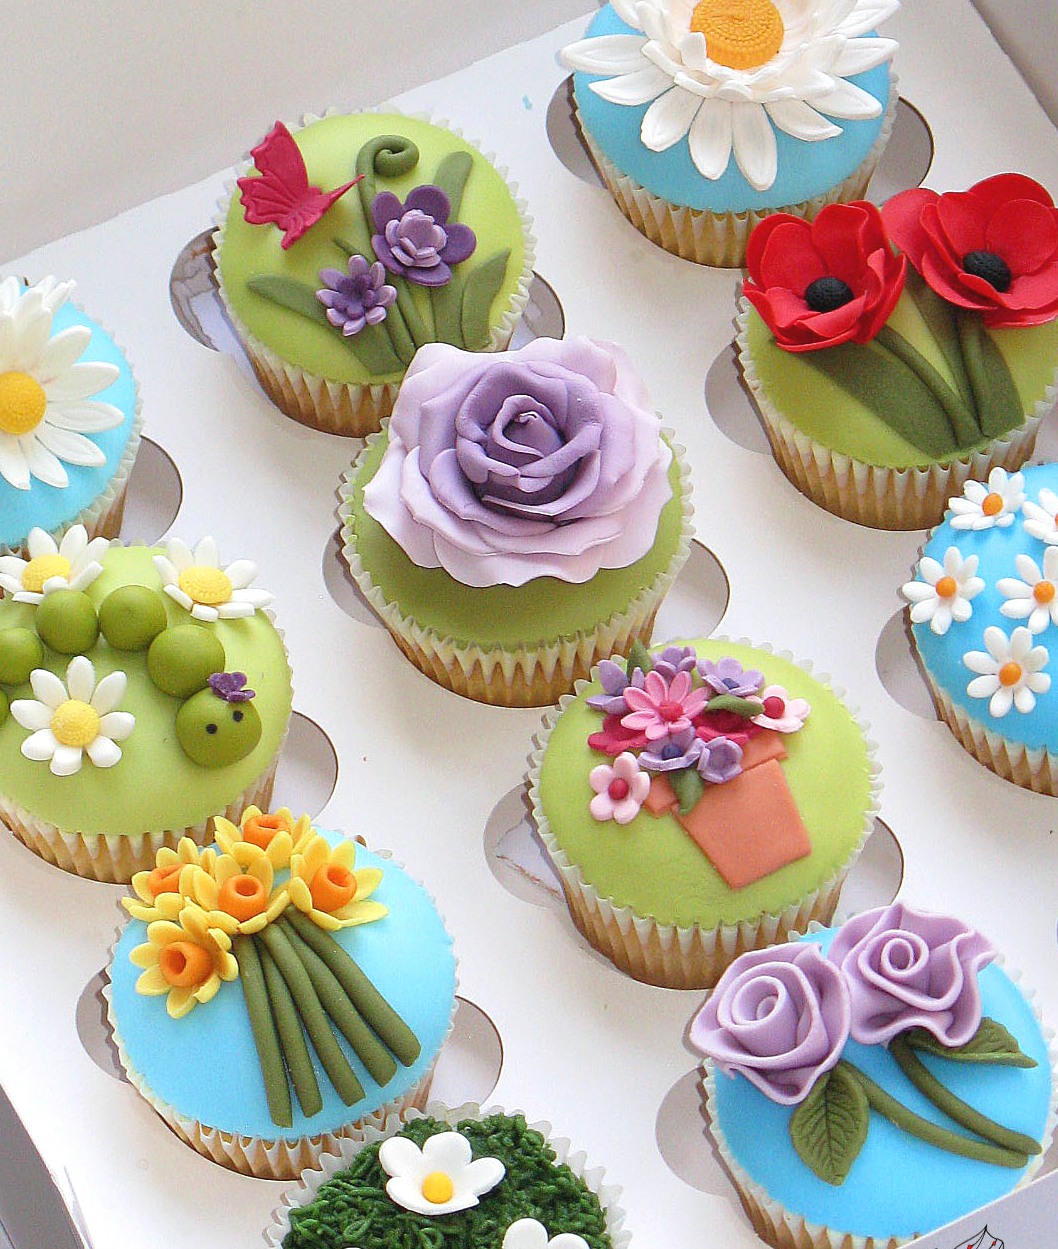 Flower Garden Cupcakes The Creative Cake Academy Great For Mothers Day